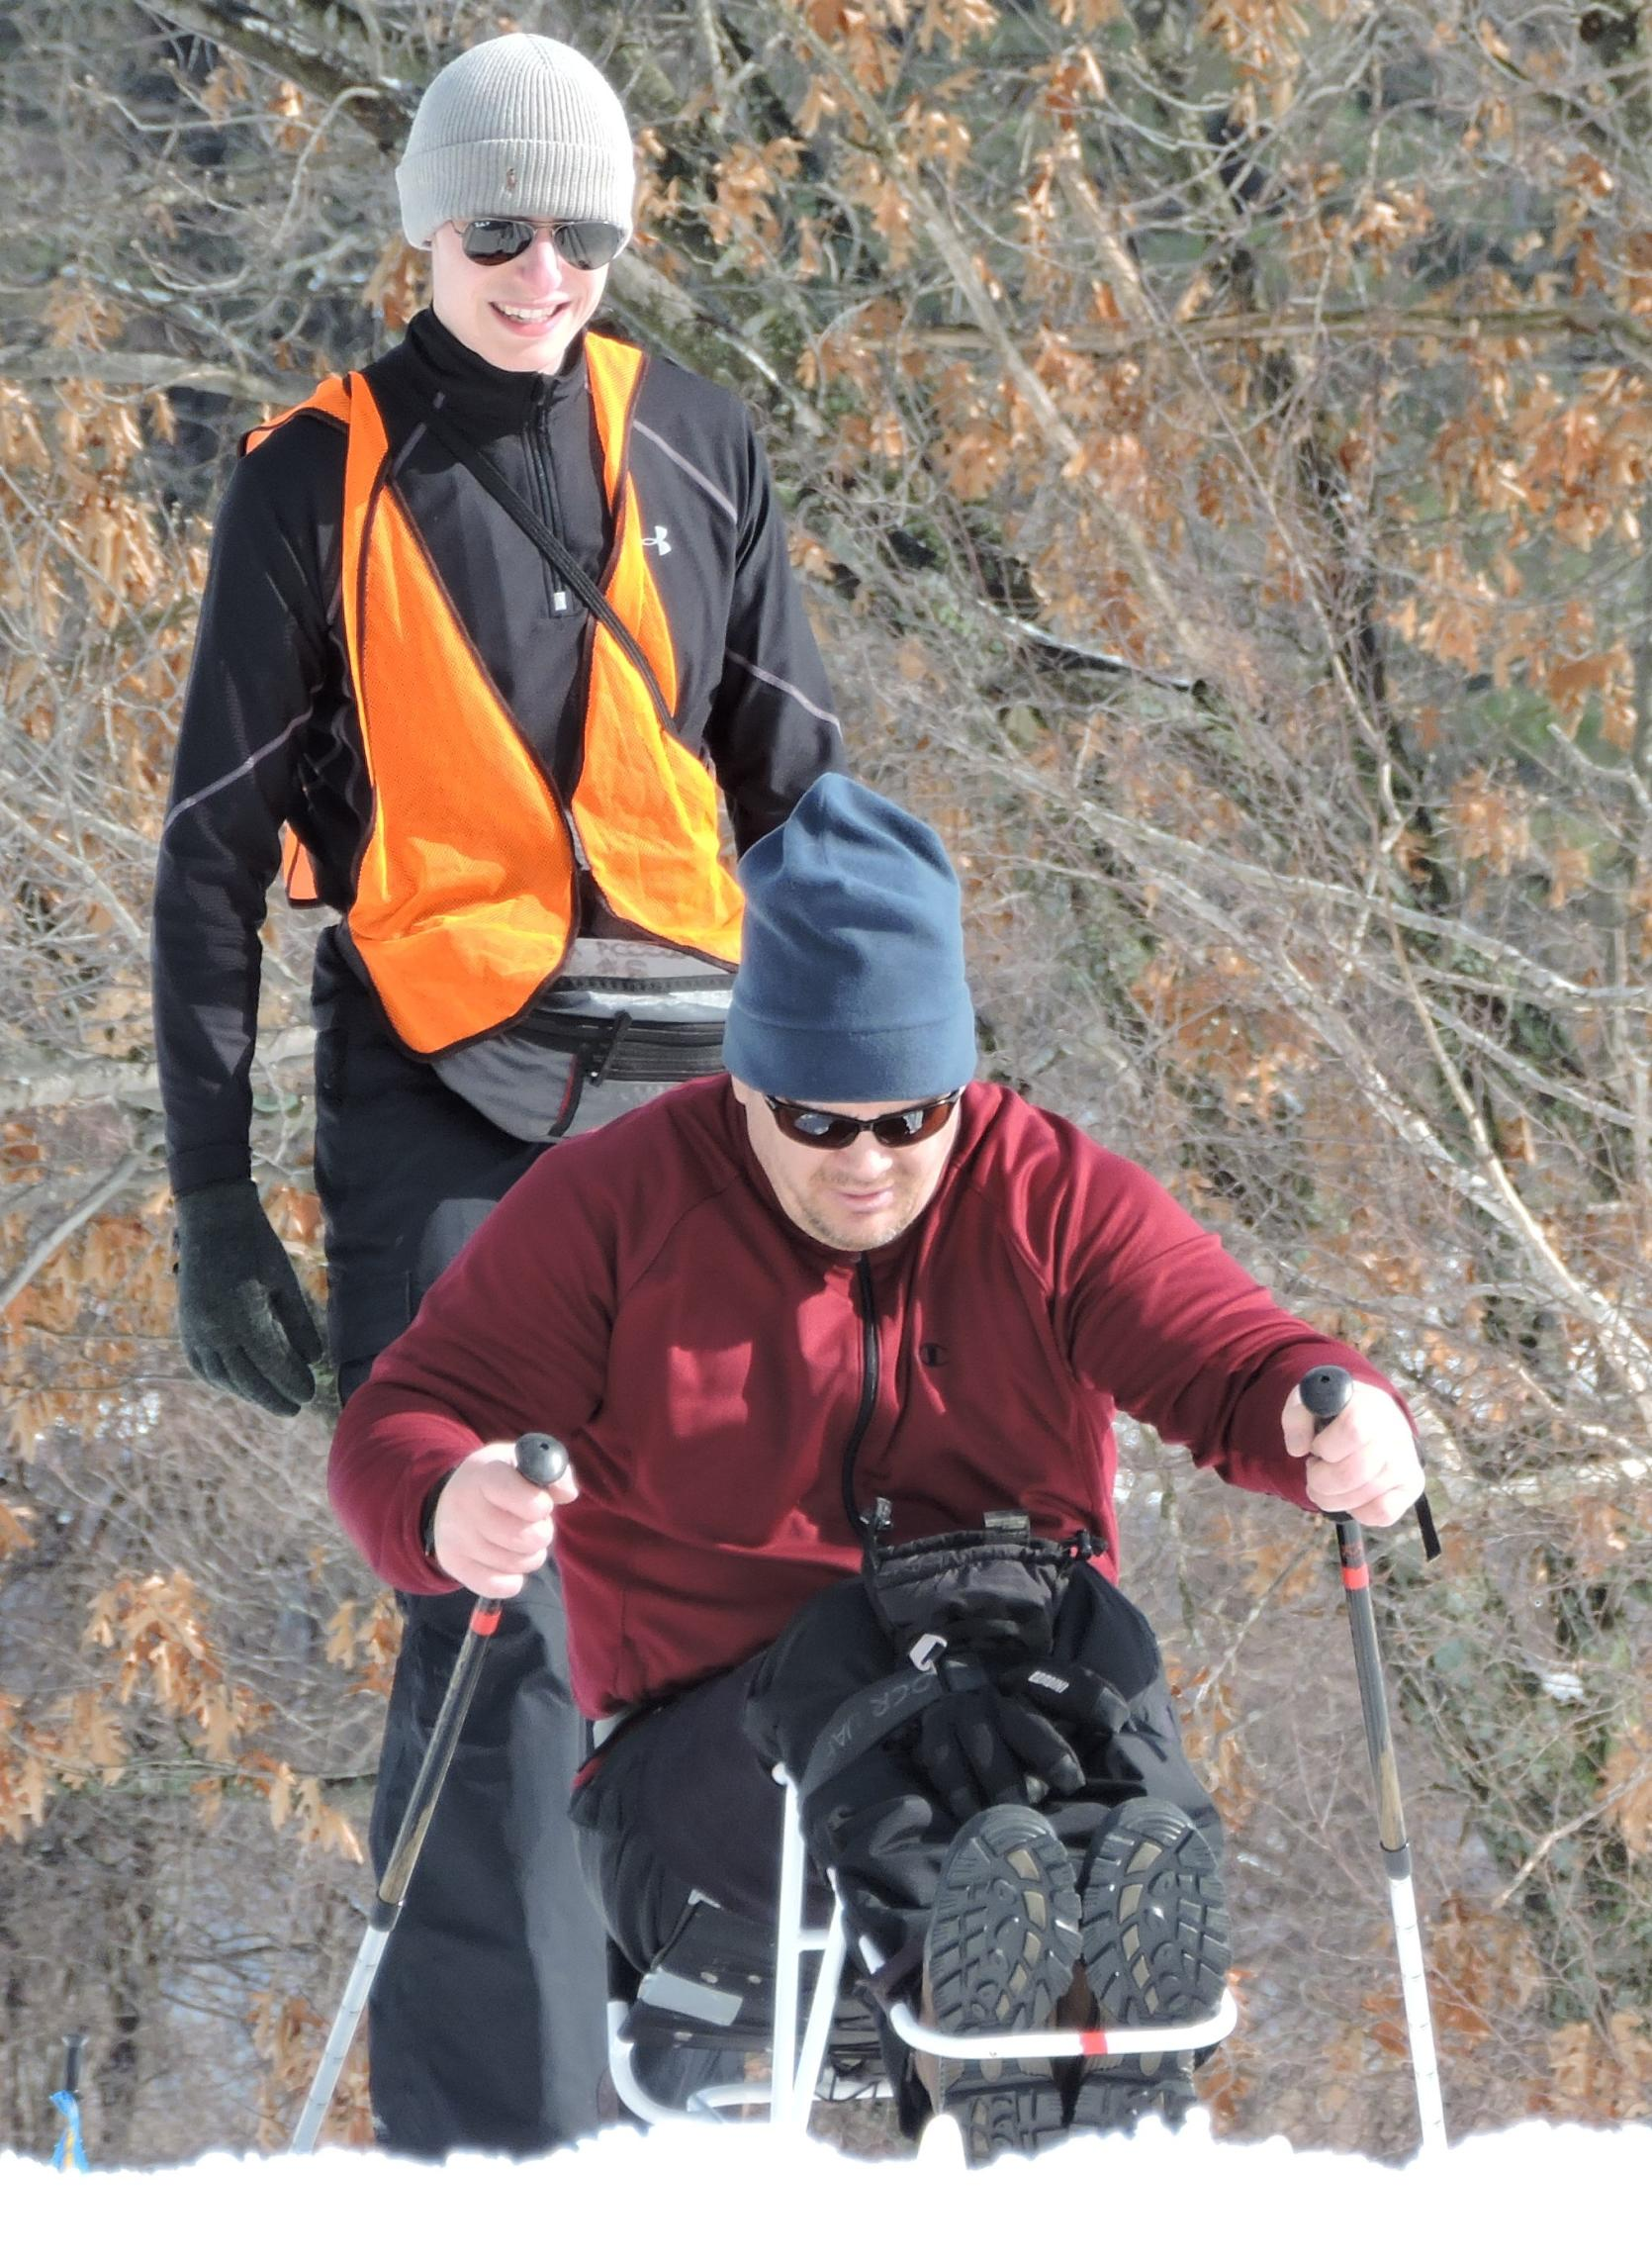 A man in a sit ski is pushing himself up a slight hill using two short ski poles. His knees are bent, and a strap is holding his legs to the sit ski frame. Another person is walking behind him.